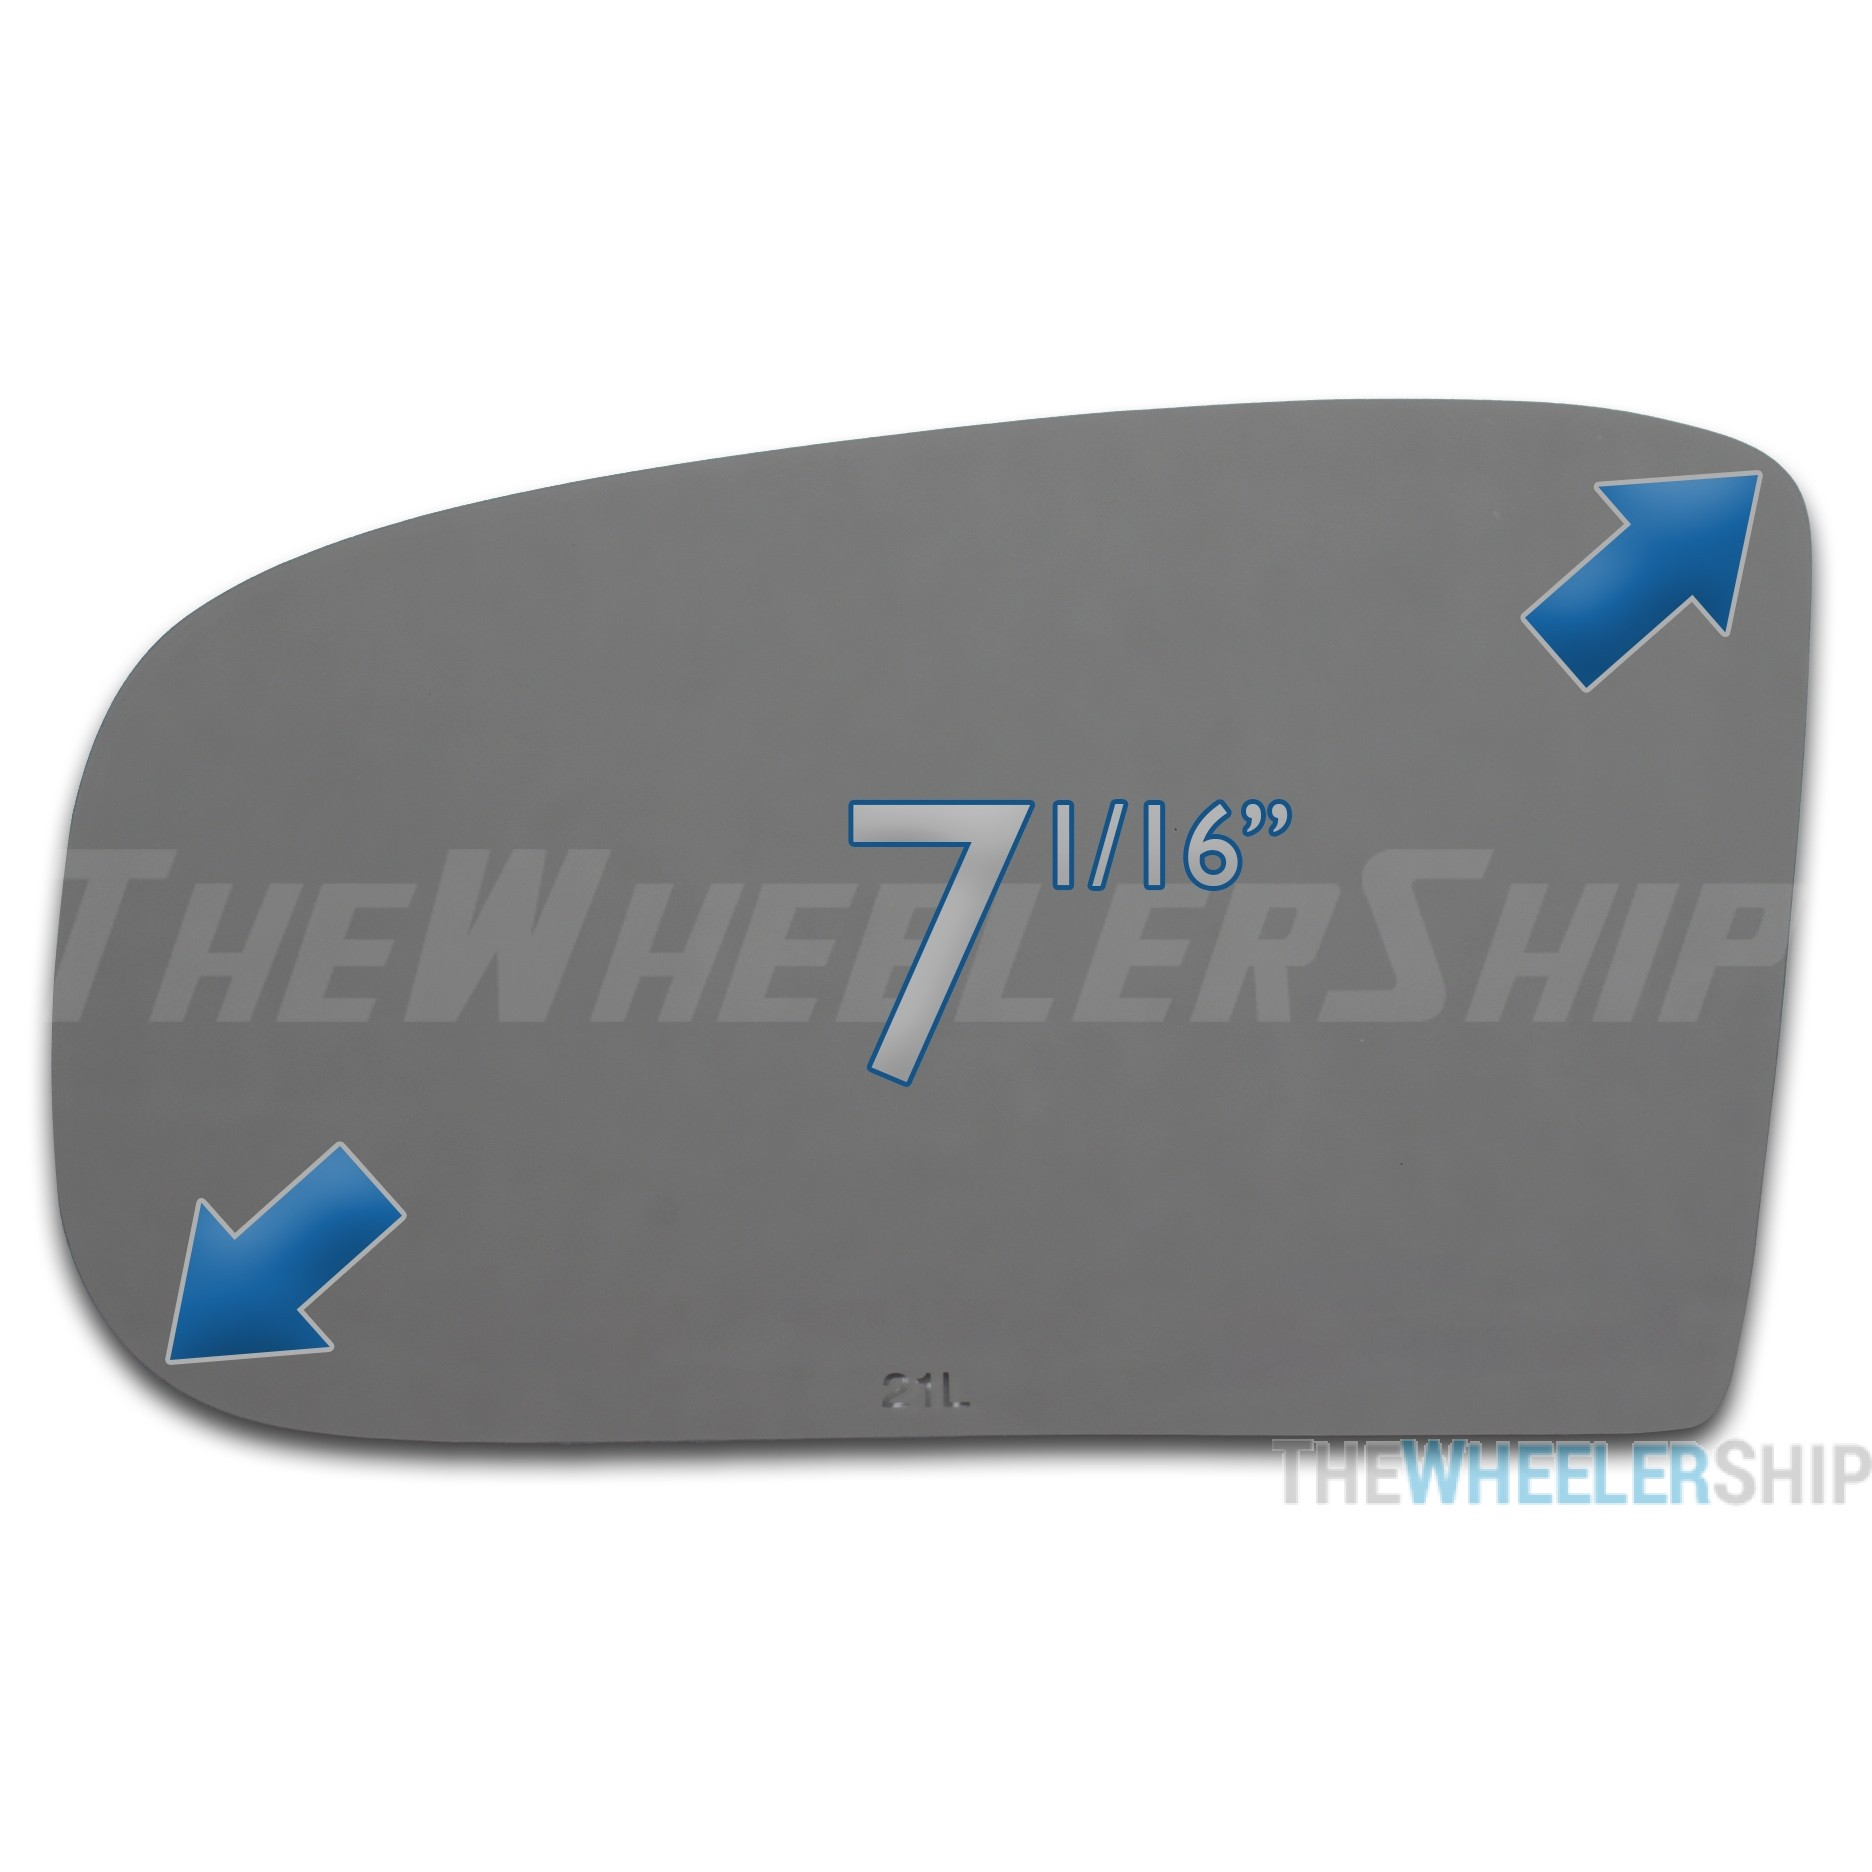 S-Class Mirror Glass For Driver Side Mirror On Mercedes C-Class